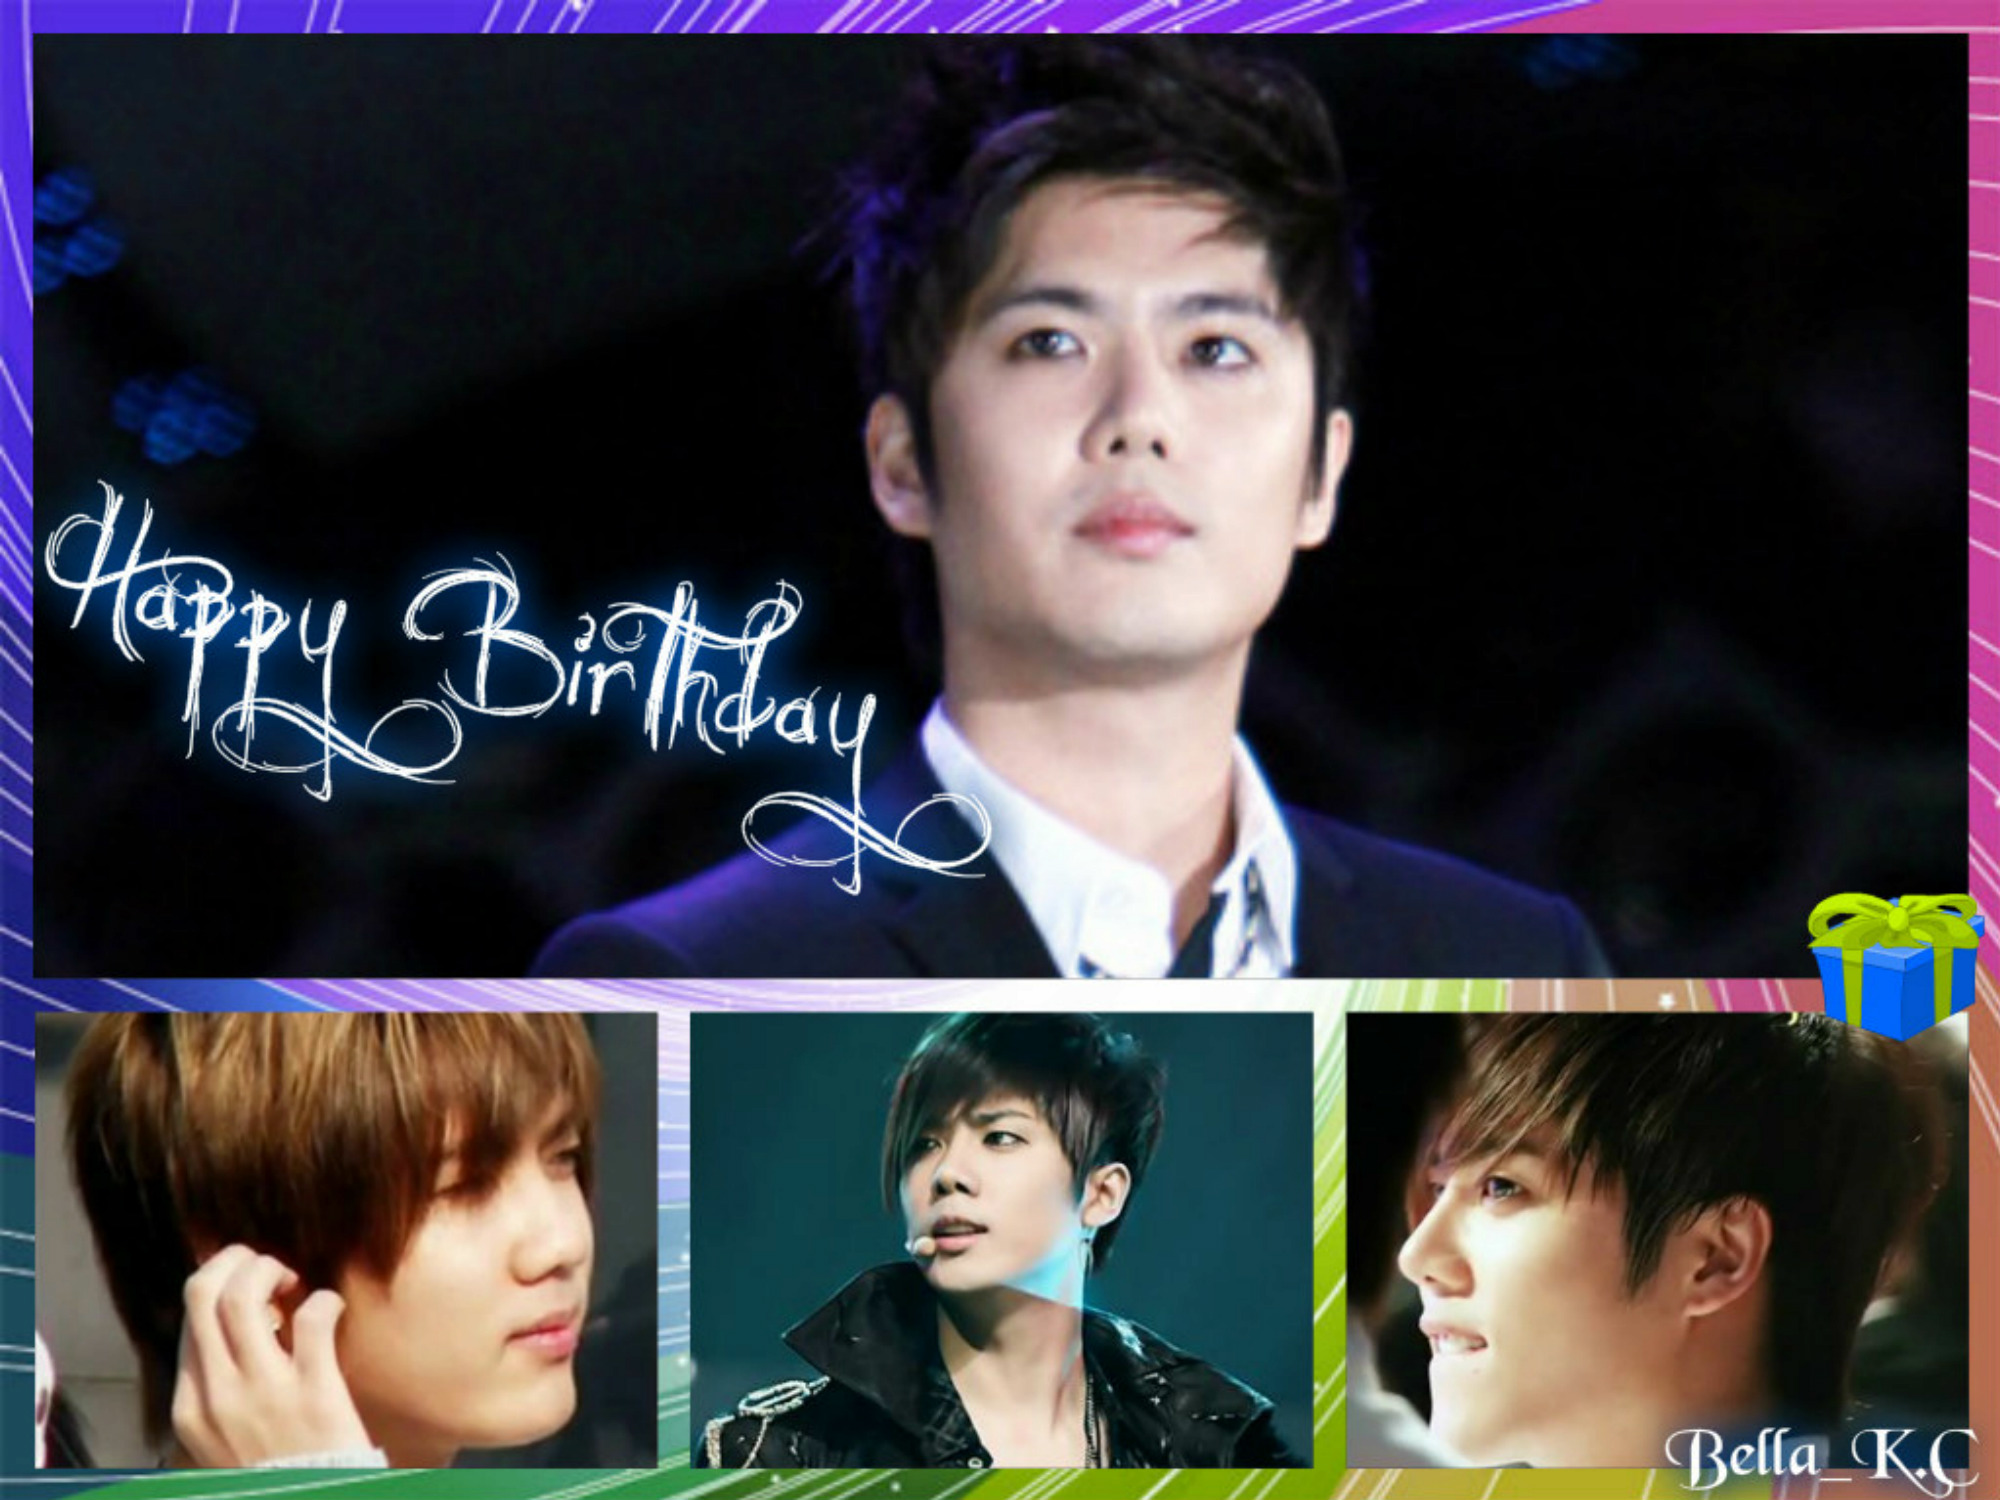 http://s6.picofile.com/file/8240457950/160224_Kyu_Jong_Birthdar1_By_Bella_K_C.jpg